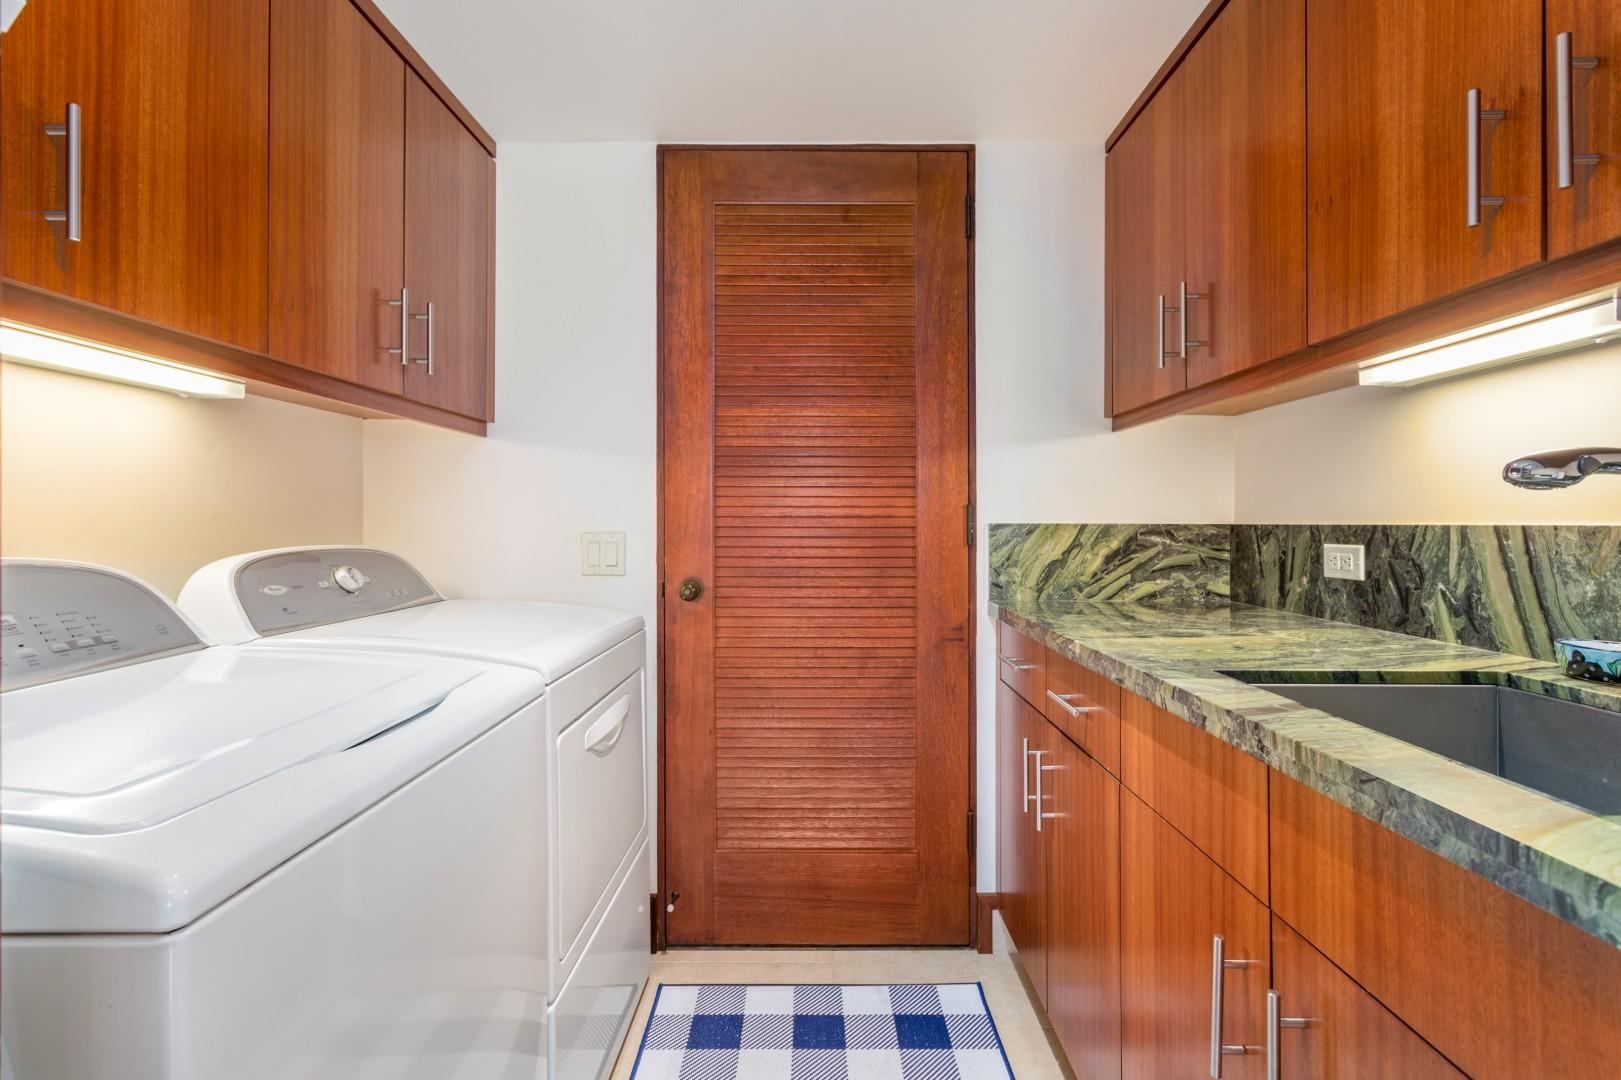 Spacious and well-appointed laundry room.